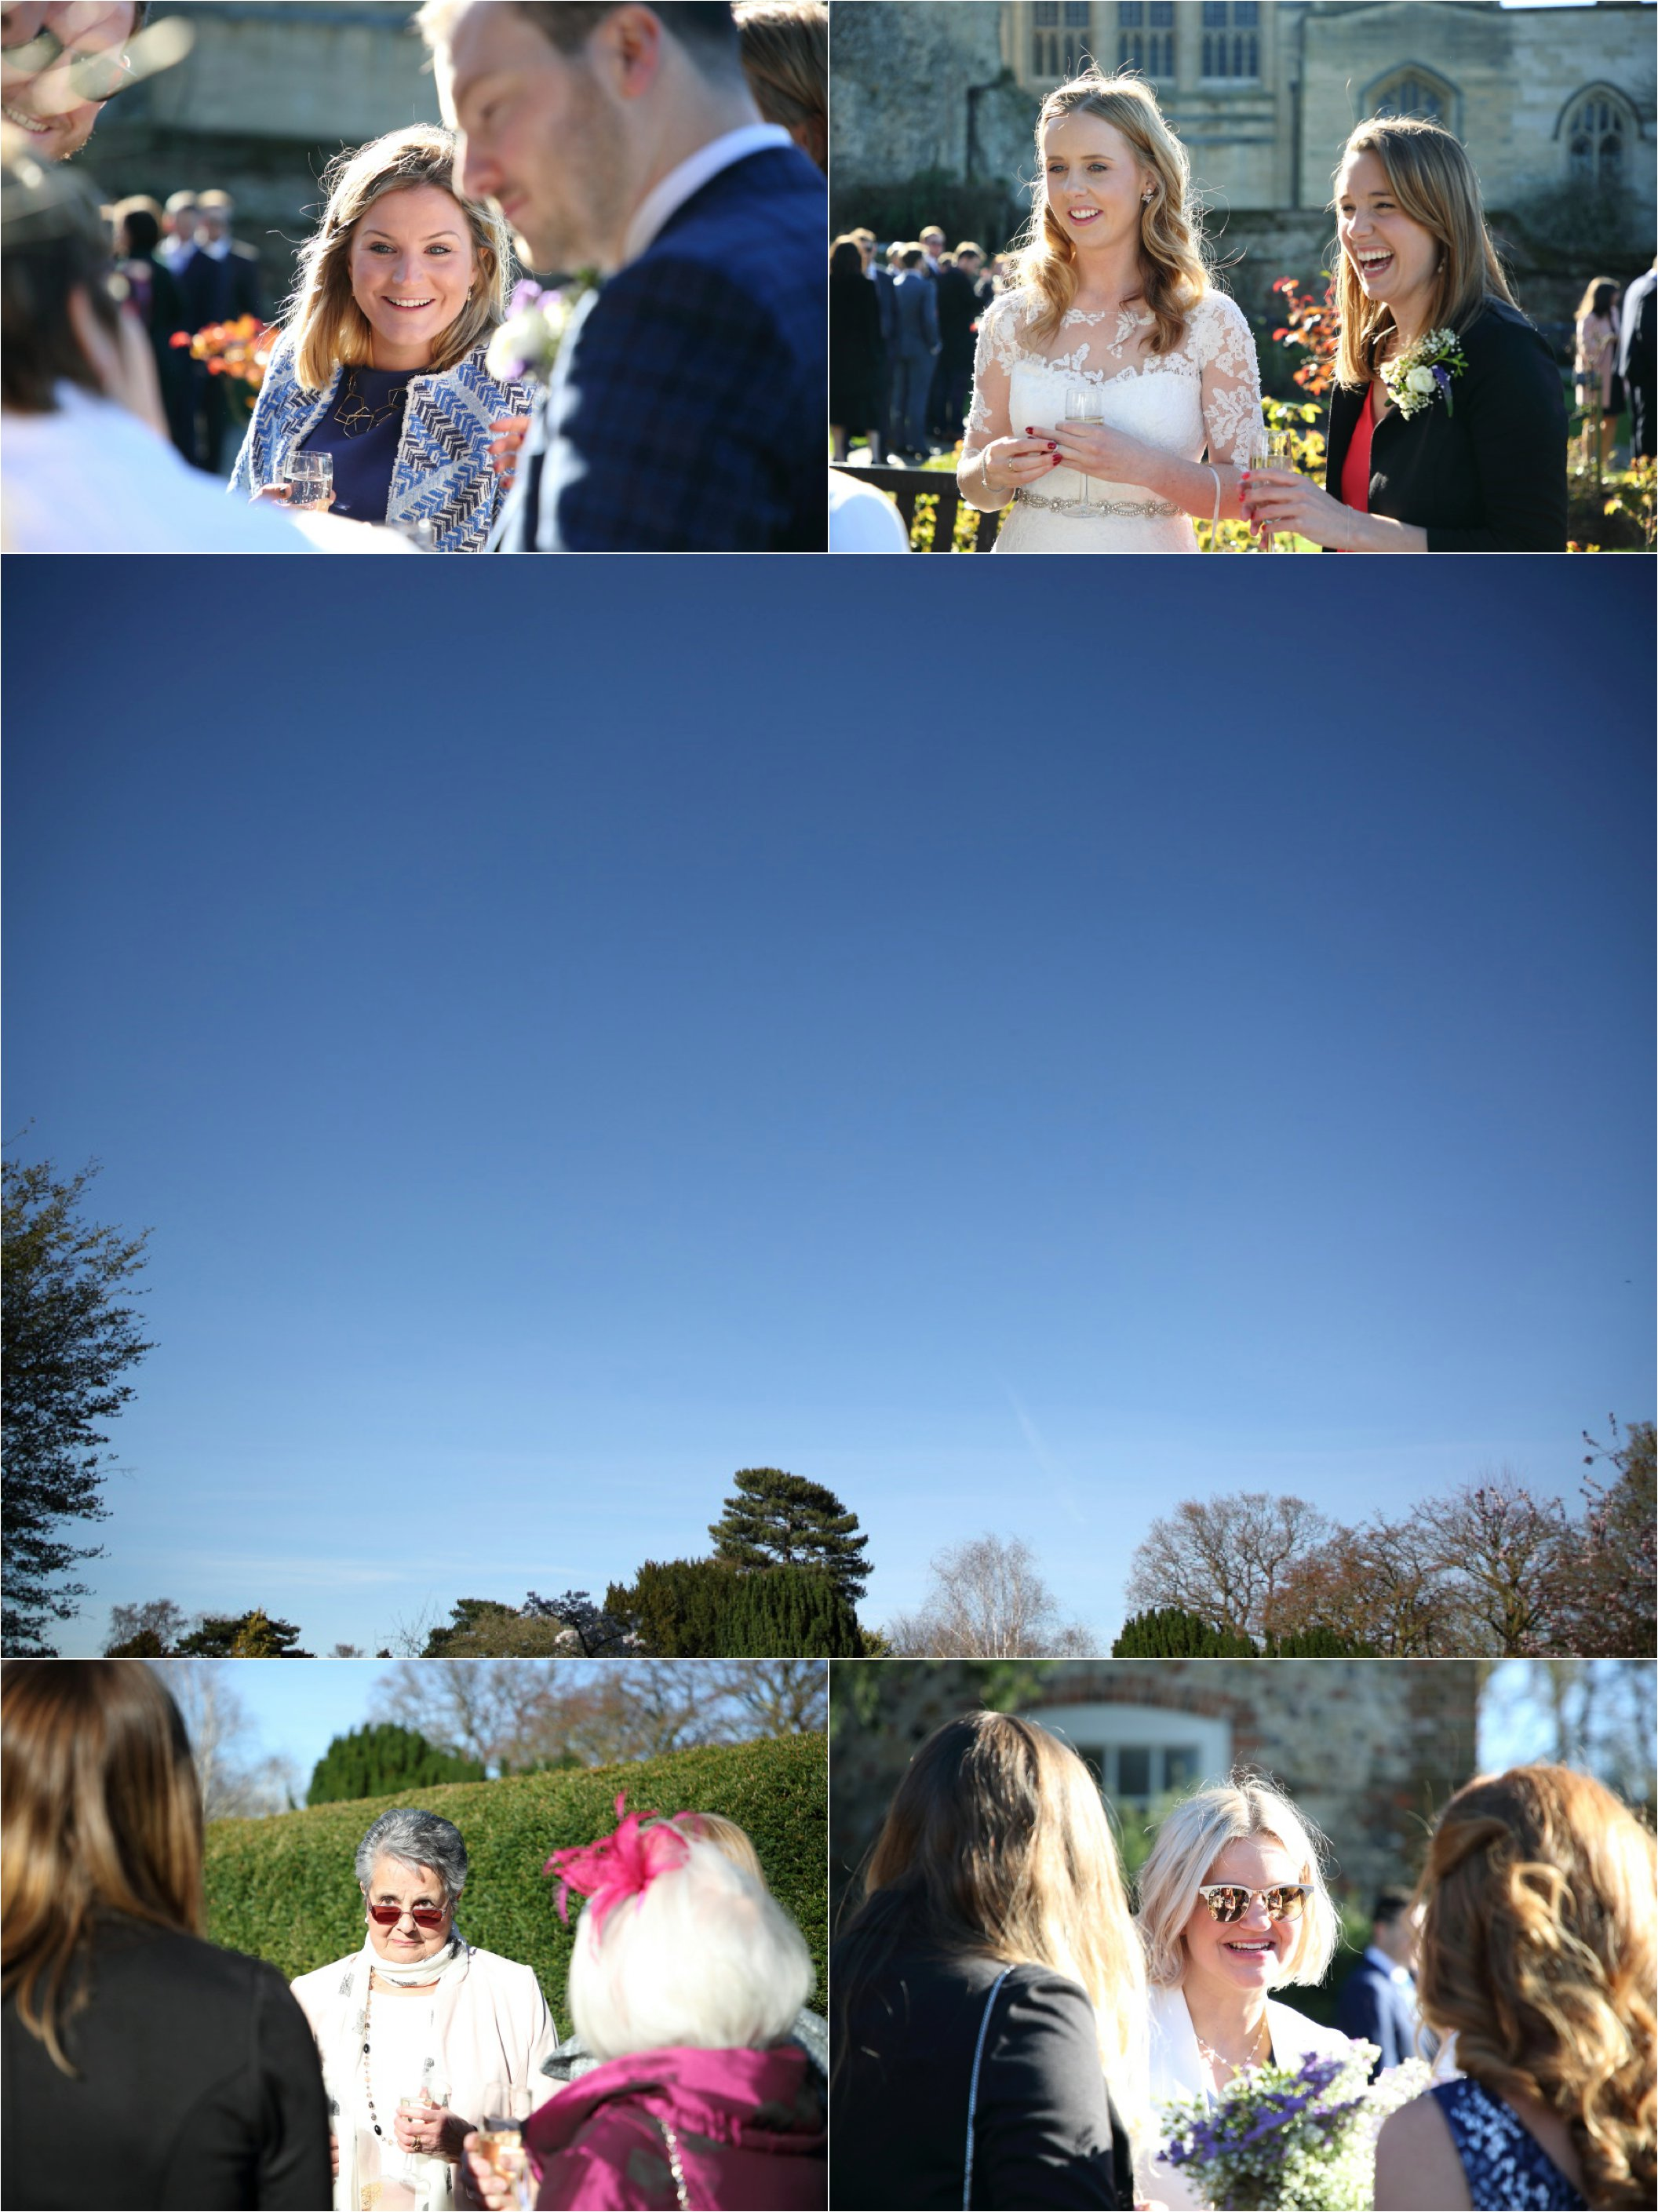 documentary wedding photography in the abbey gardens, bury st edmunds suffolk